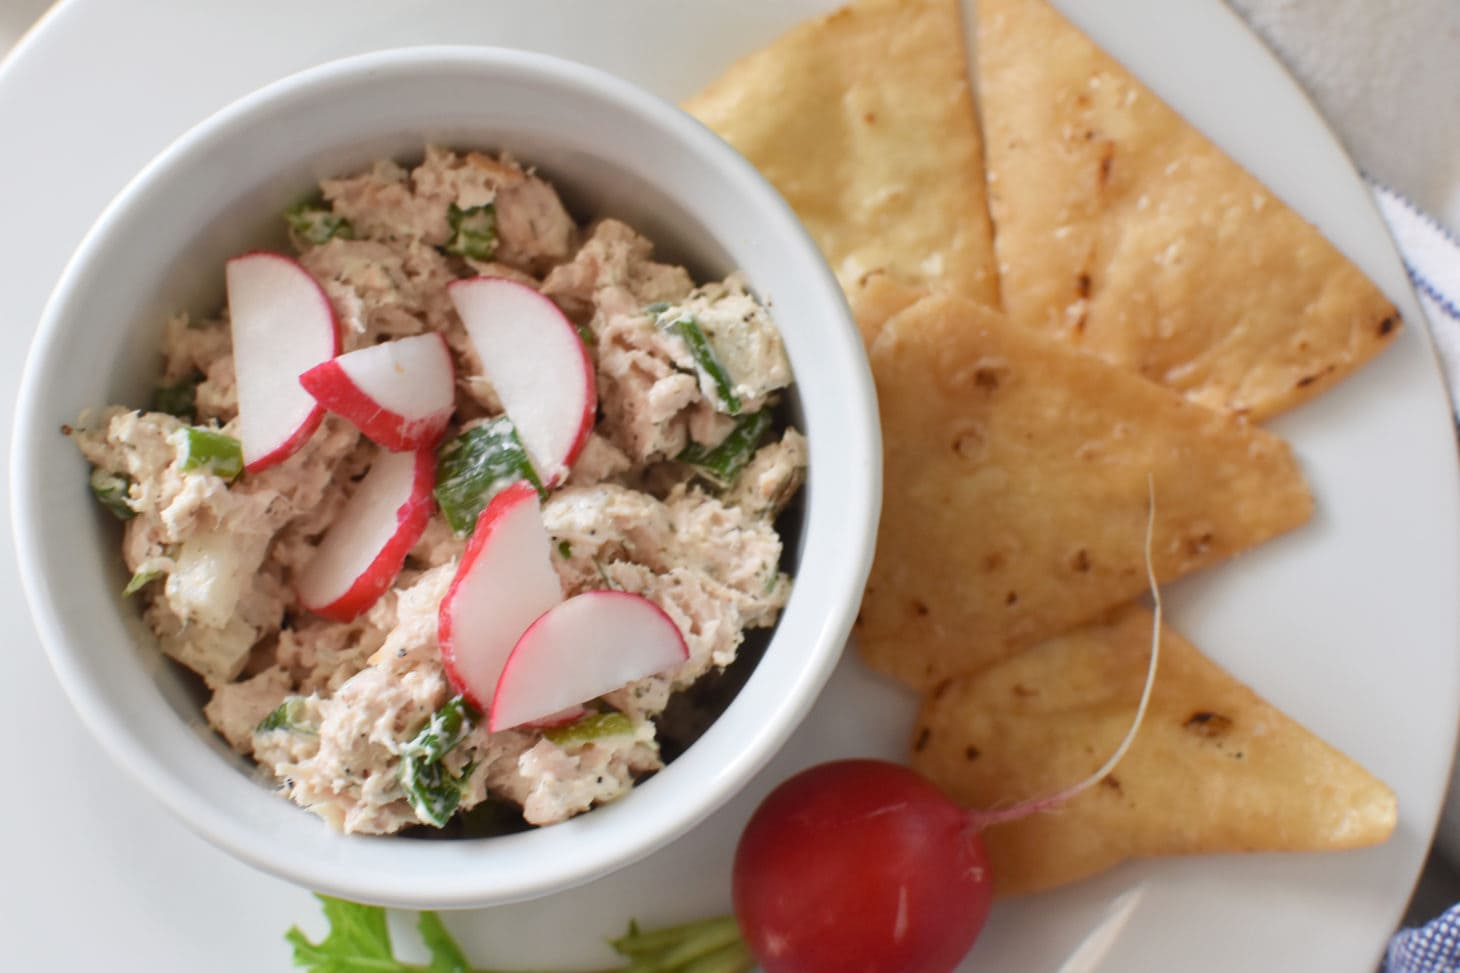 Healthy and Simple Tuna Salad with Primizie Crisps and Radish